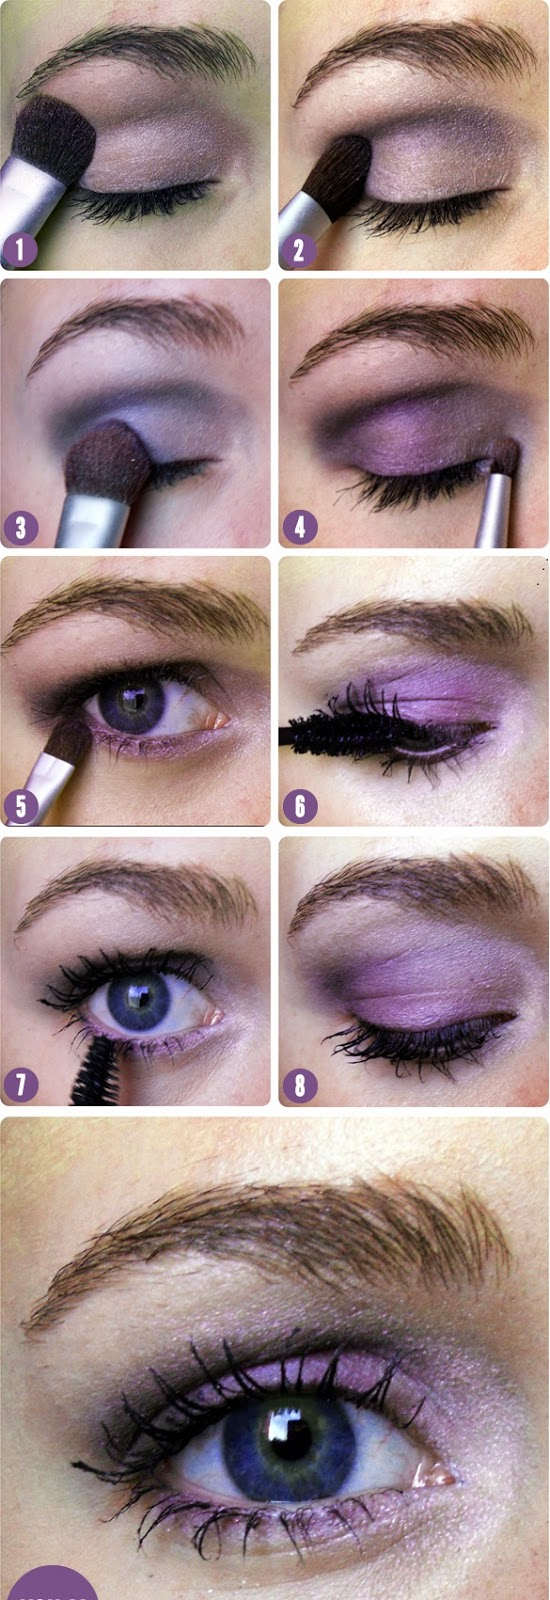 Purple Shadow , Shades of Lilac atop Blue Eyes Create an Analogous Color Scheme Perfect for Spring